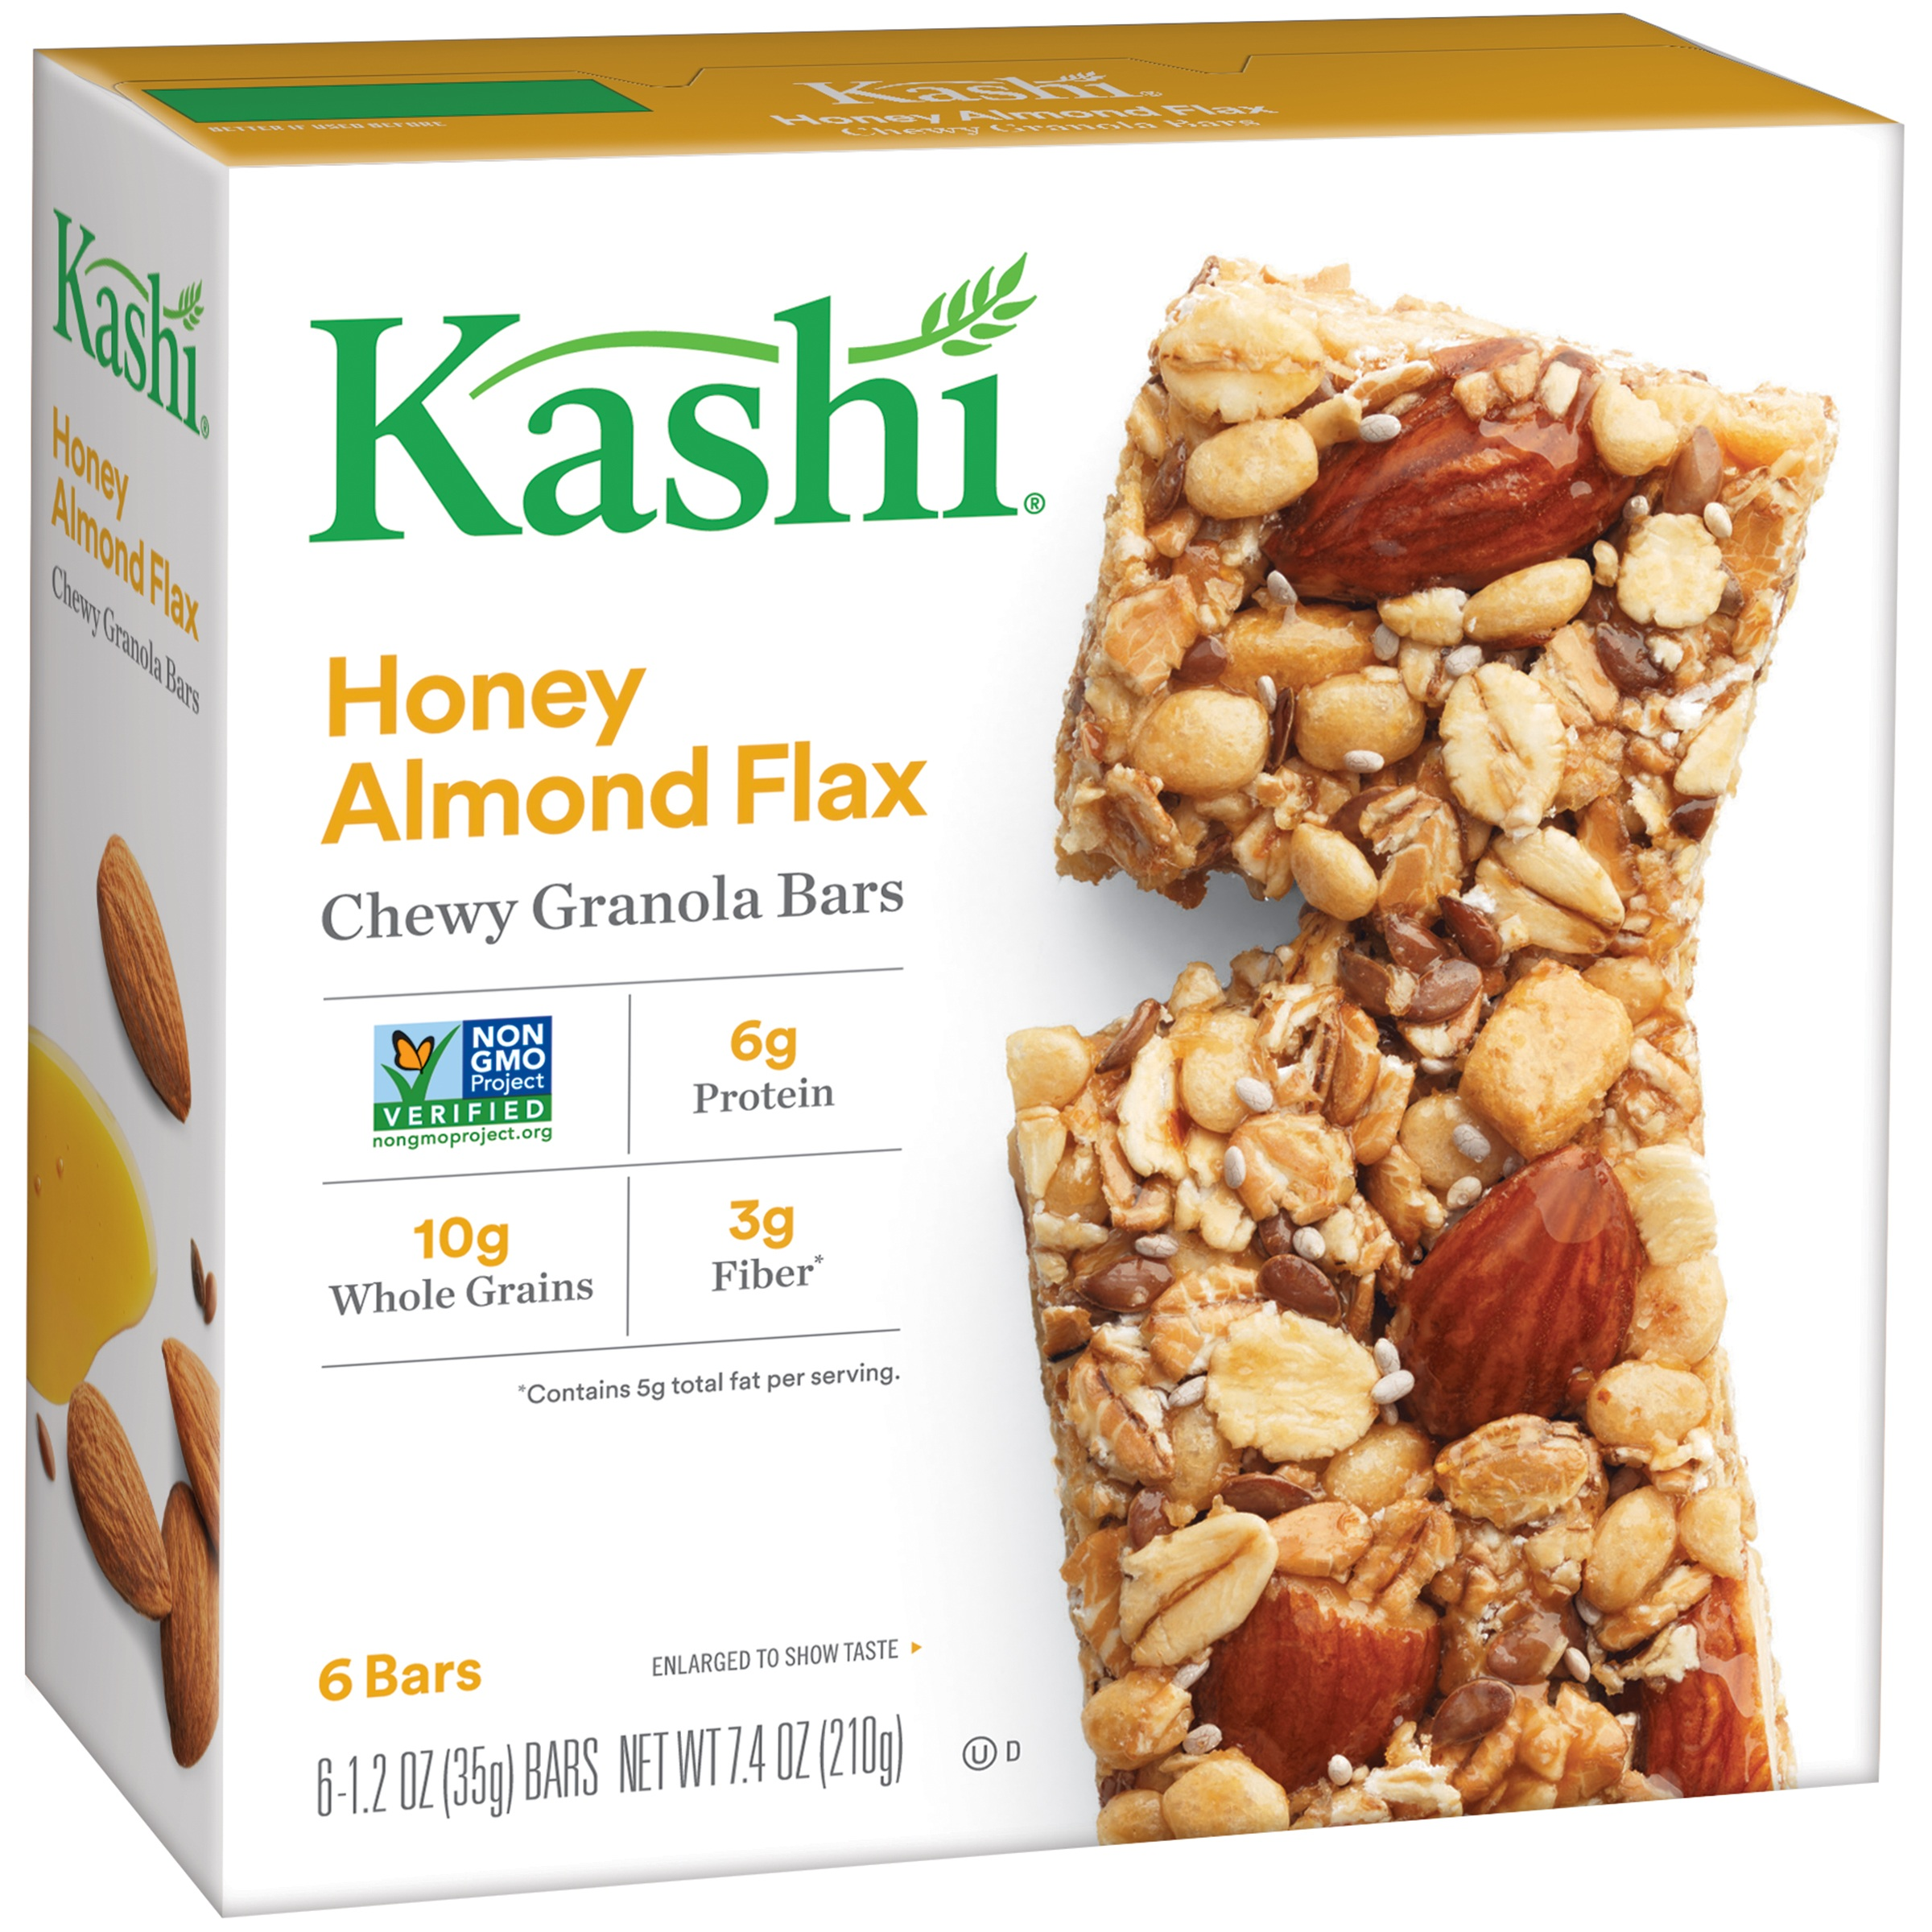 Kashi Honey Almond Flax Chewy Granola Bars, 6-1.2 bars 7.4 oz box